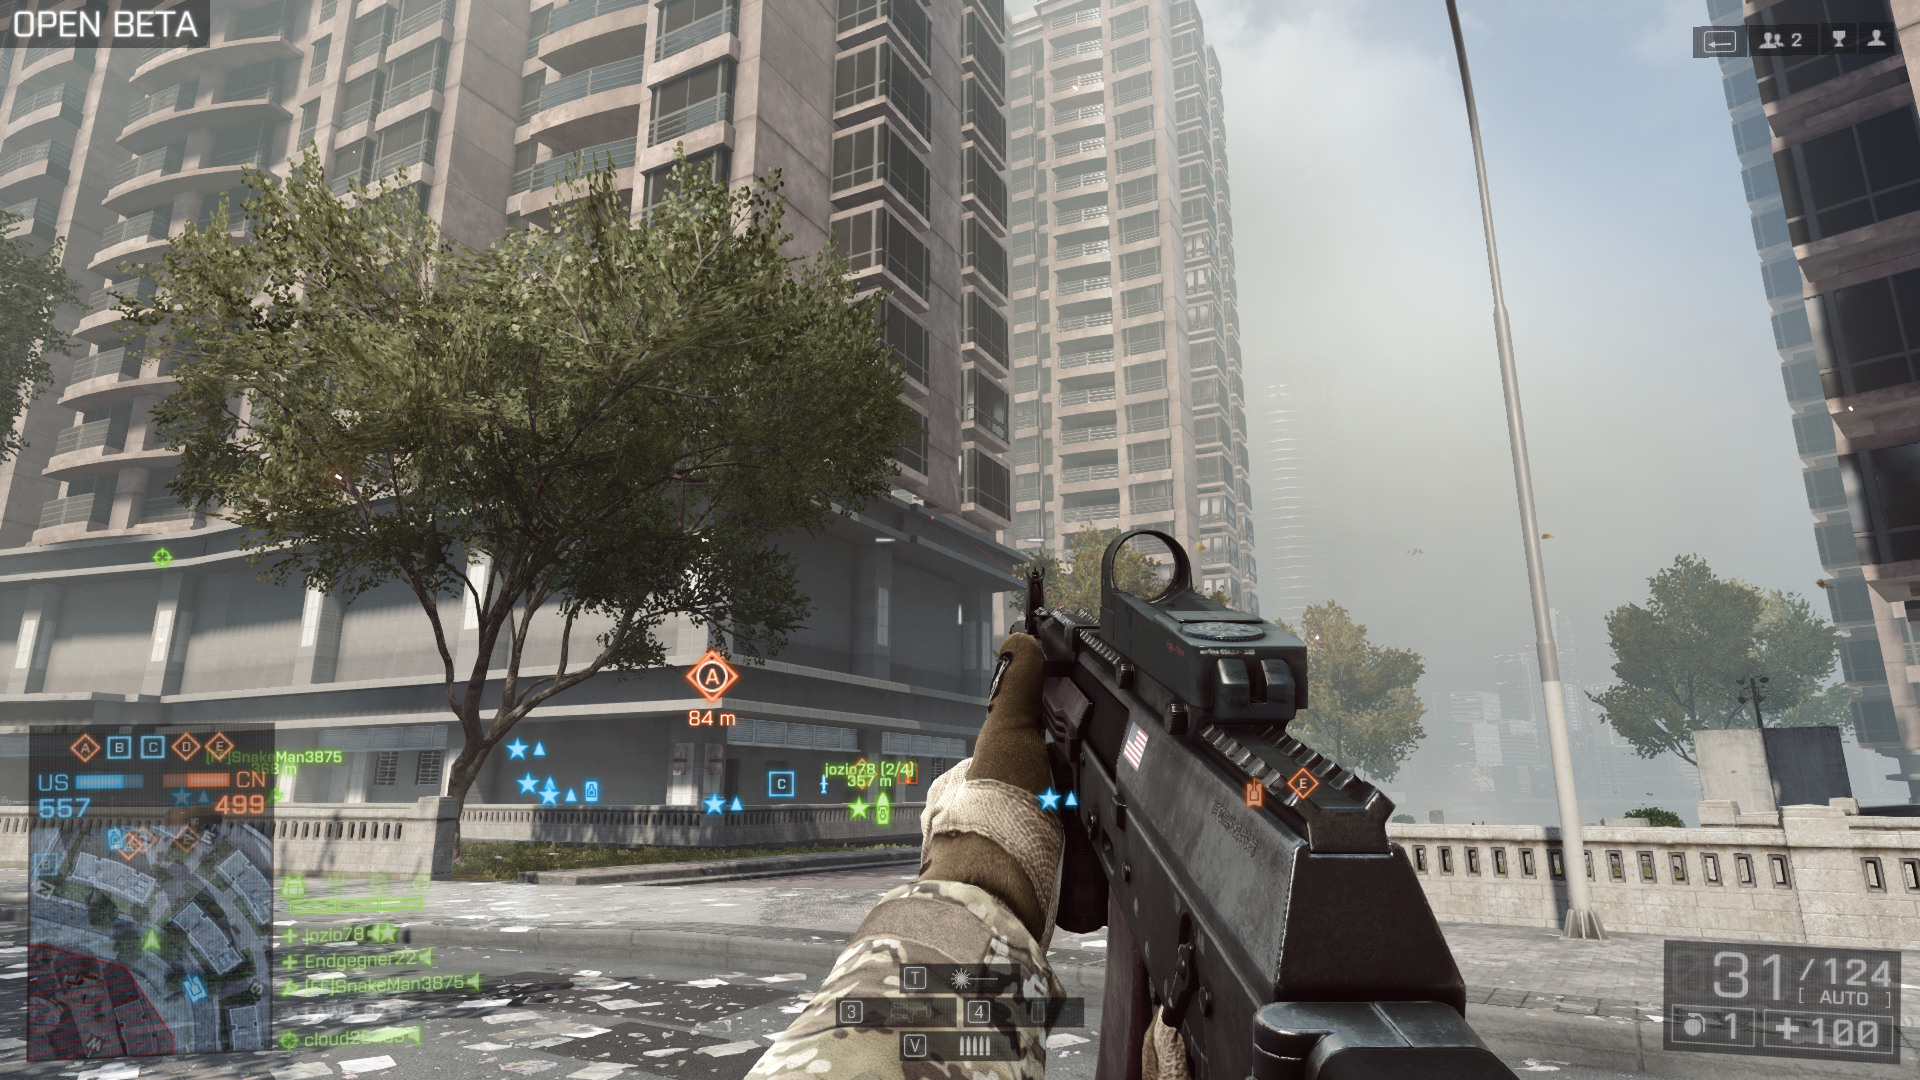 http://endgegner.fightercom.de/BF4_Screenshot/Battlefield4OpenBeta05.png